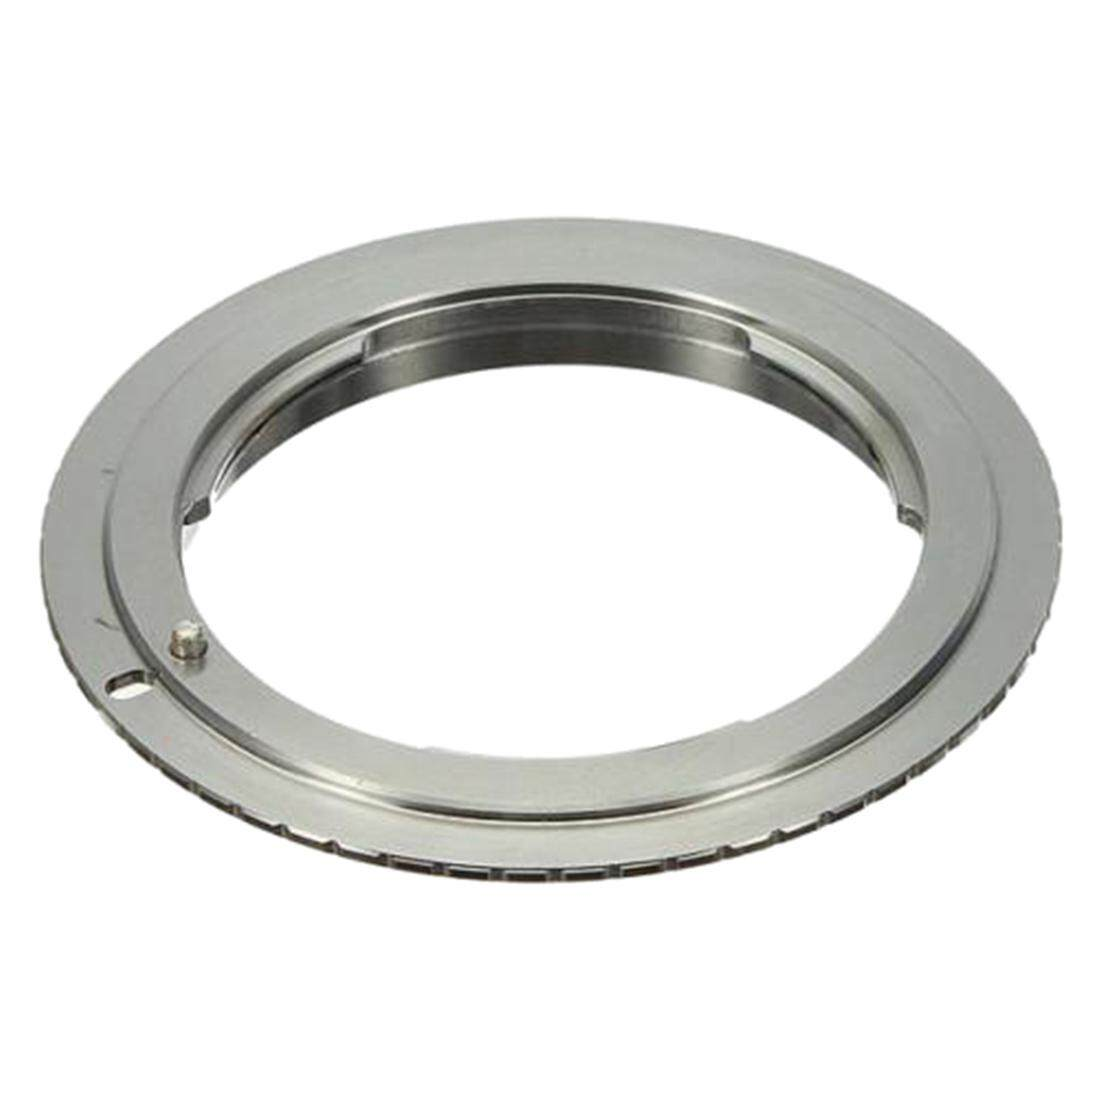 For Nikon Ai/af Lens To For Canon Eos Ef Mount Adapter Ring 7d 5d 550d 60d 450d 50d Uk By Sunnny2015.